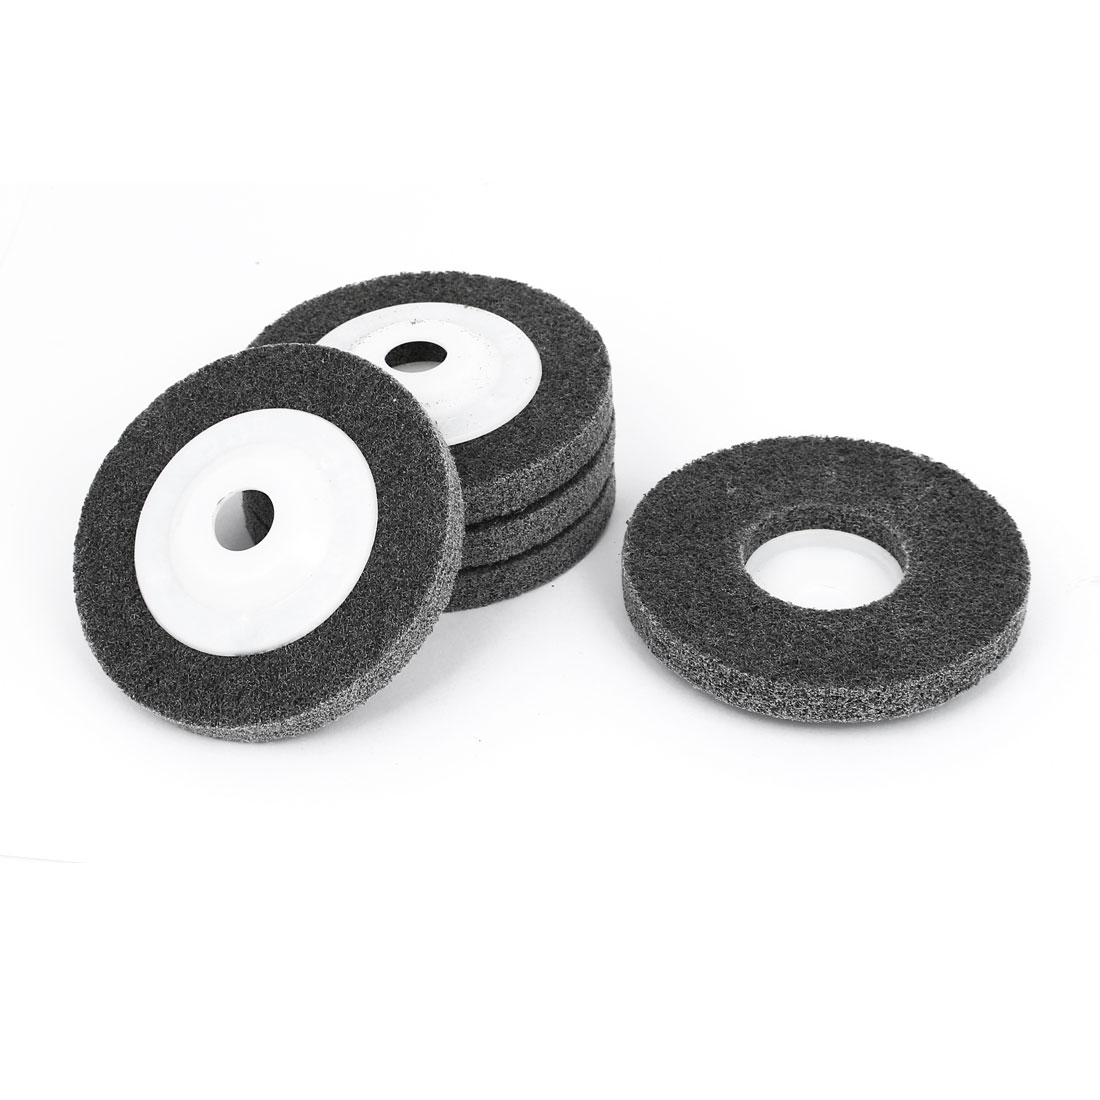 16mm Bore 100mm Dia Nylon Fiber Polishing Buffing Polishers Wheel Gray 5pcs